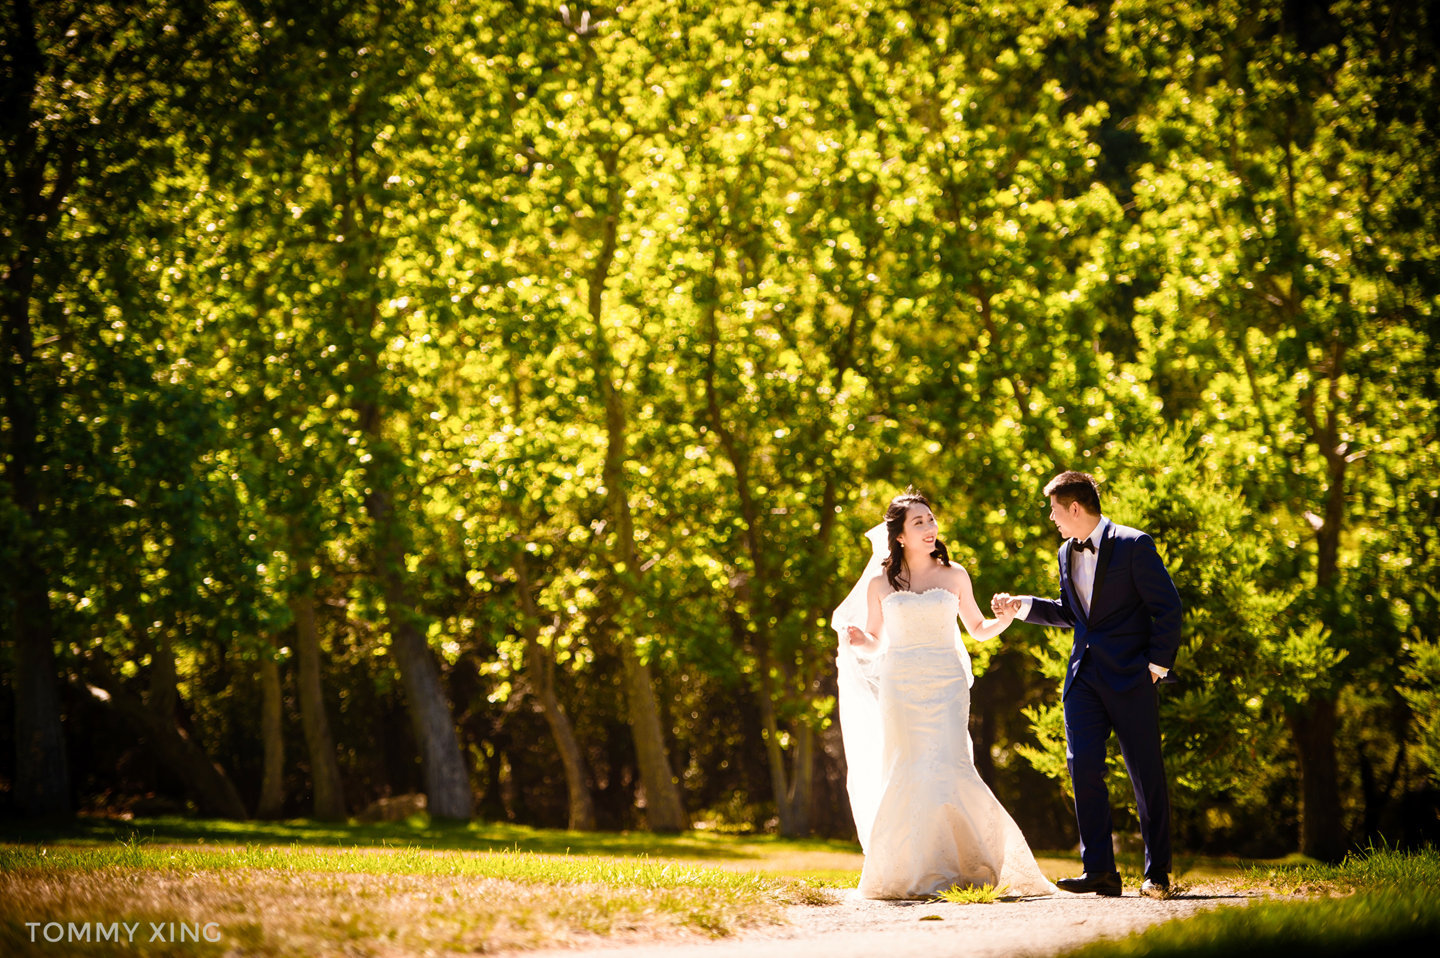 San Francisco Pre Wedding 美国旧金山湾区婚纱照 摄影师Tommy Xing Photography 01.jpg